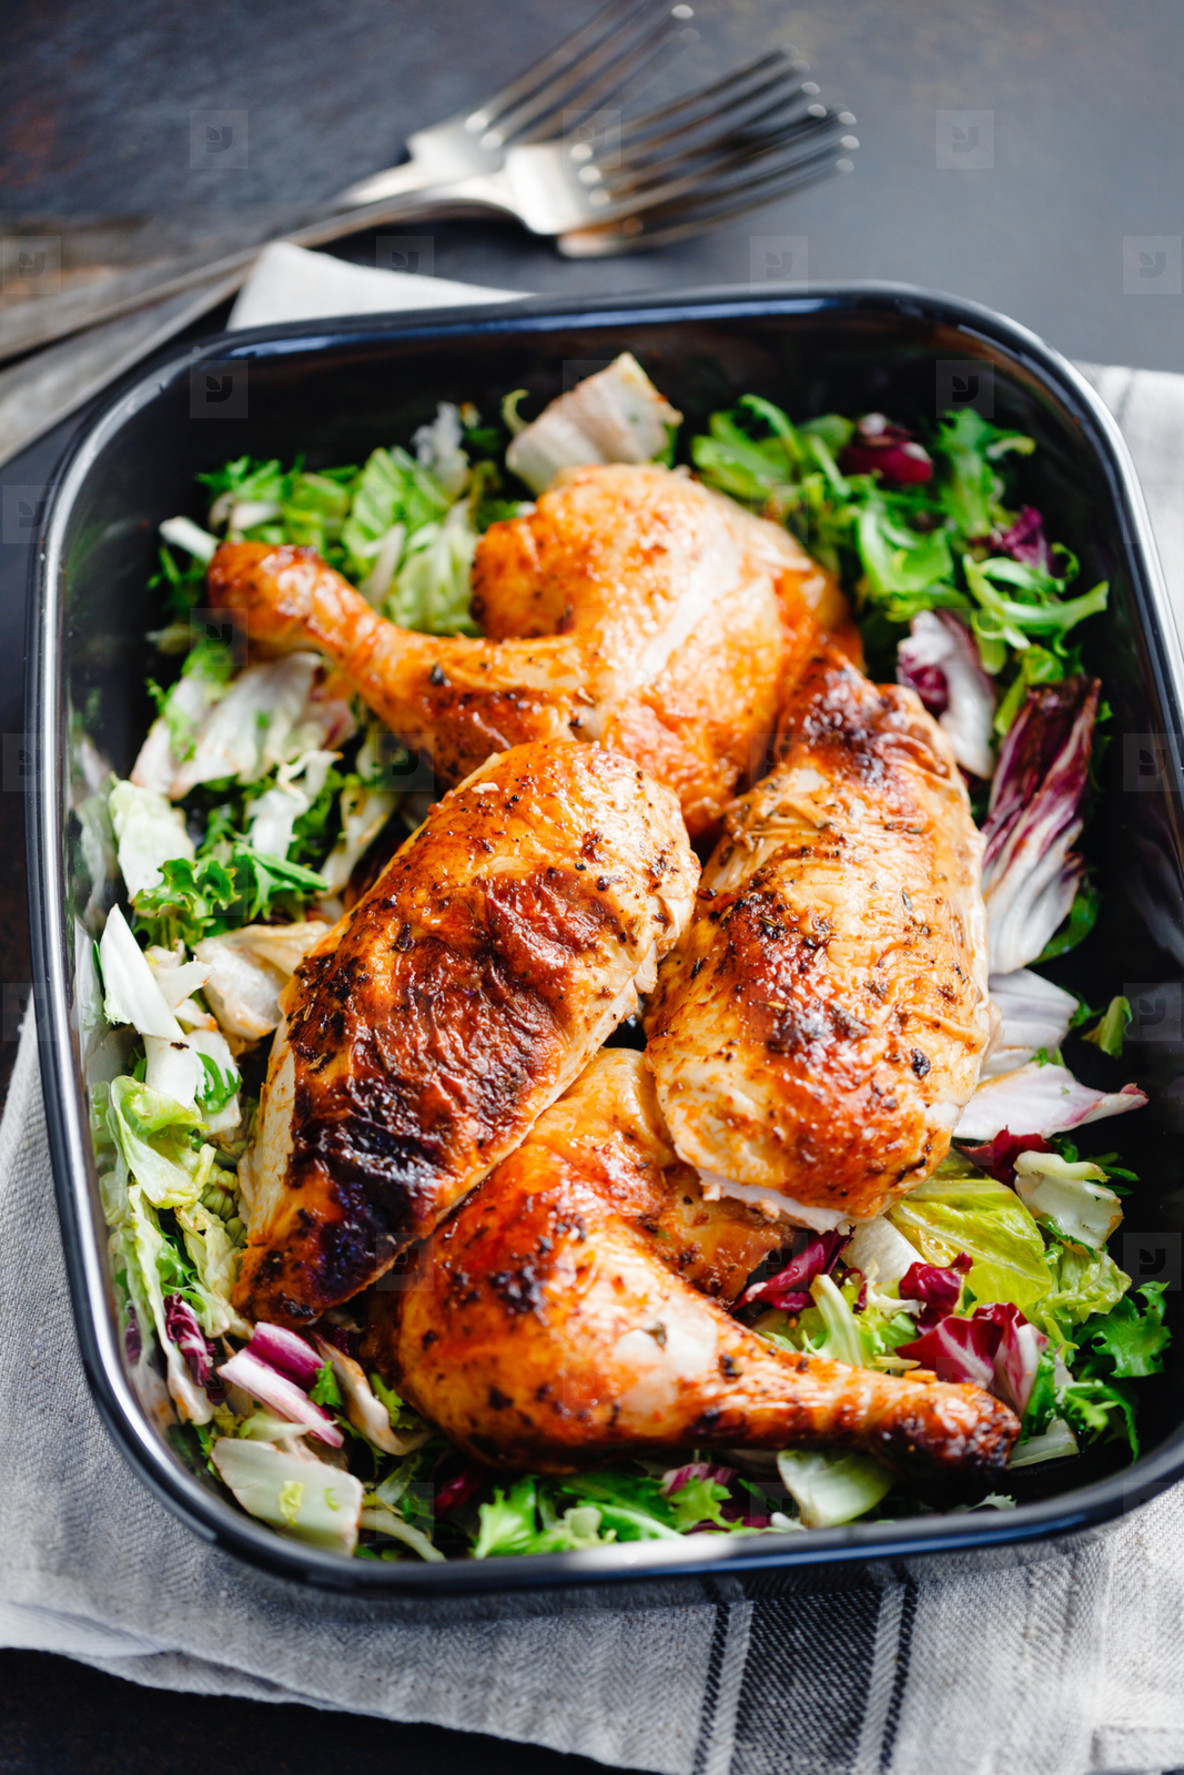 Top view of roasted chicken legs and breasts served with fresh salad and mushrooms in black pan